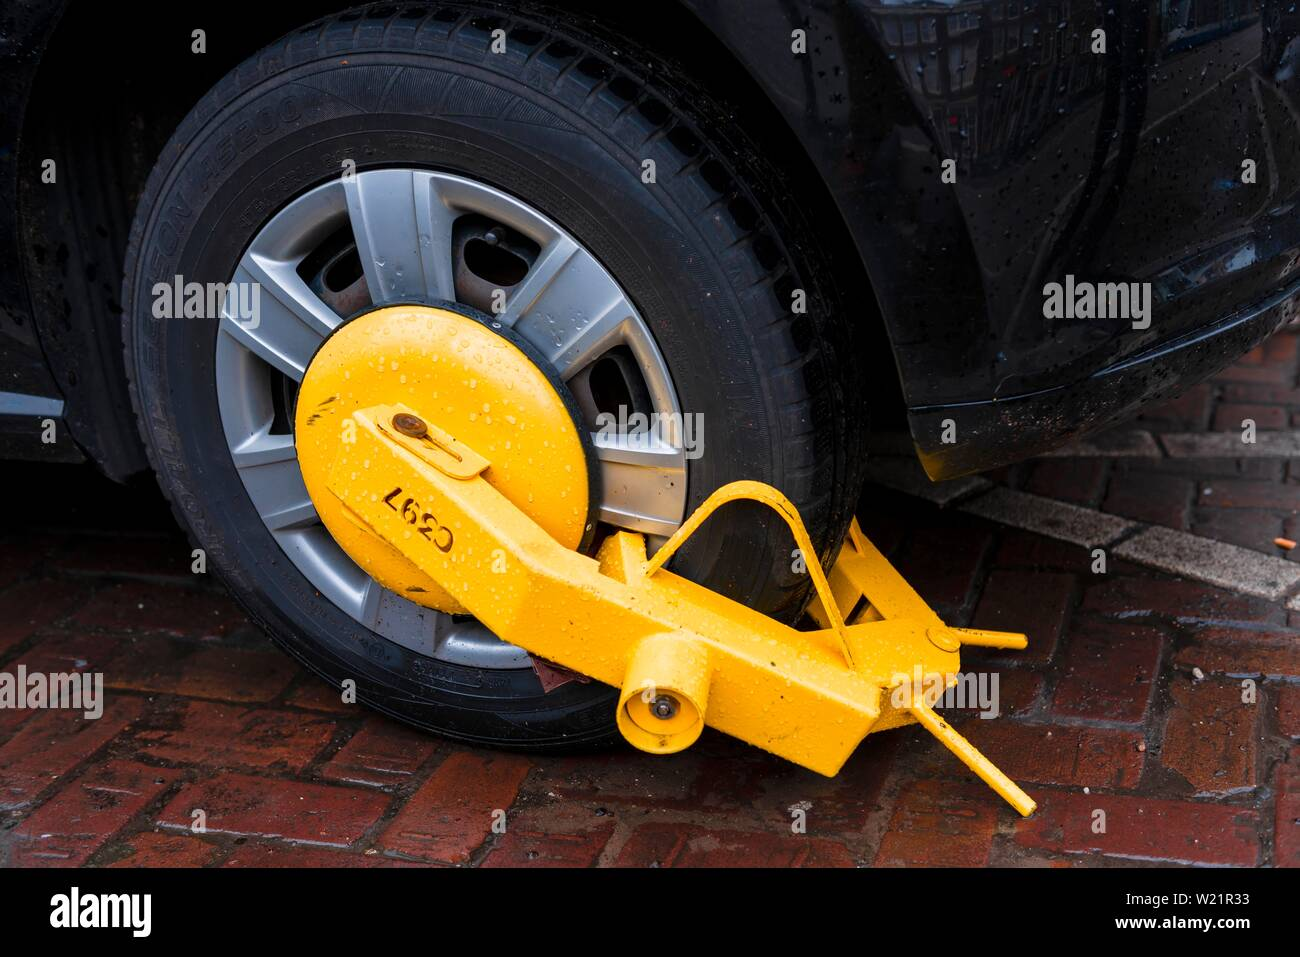 Immobiliser Stock Photos & Immobiliser Stock Images - Alamy